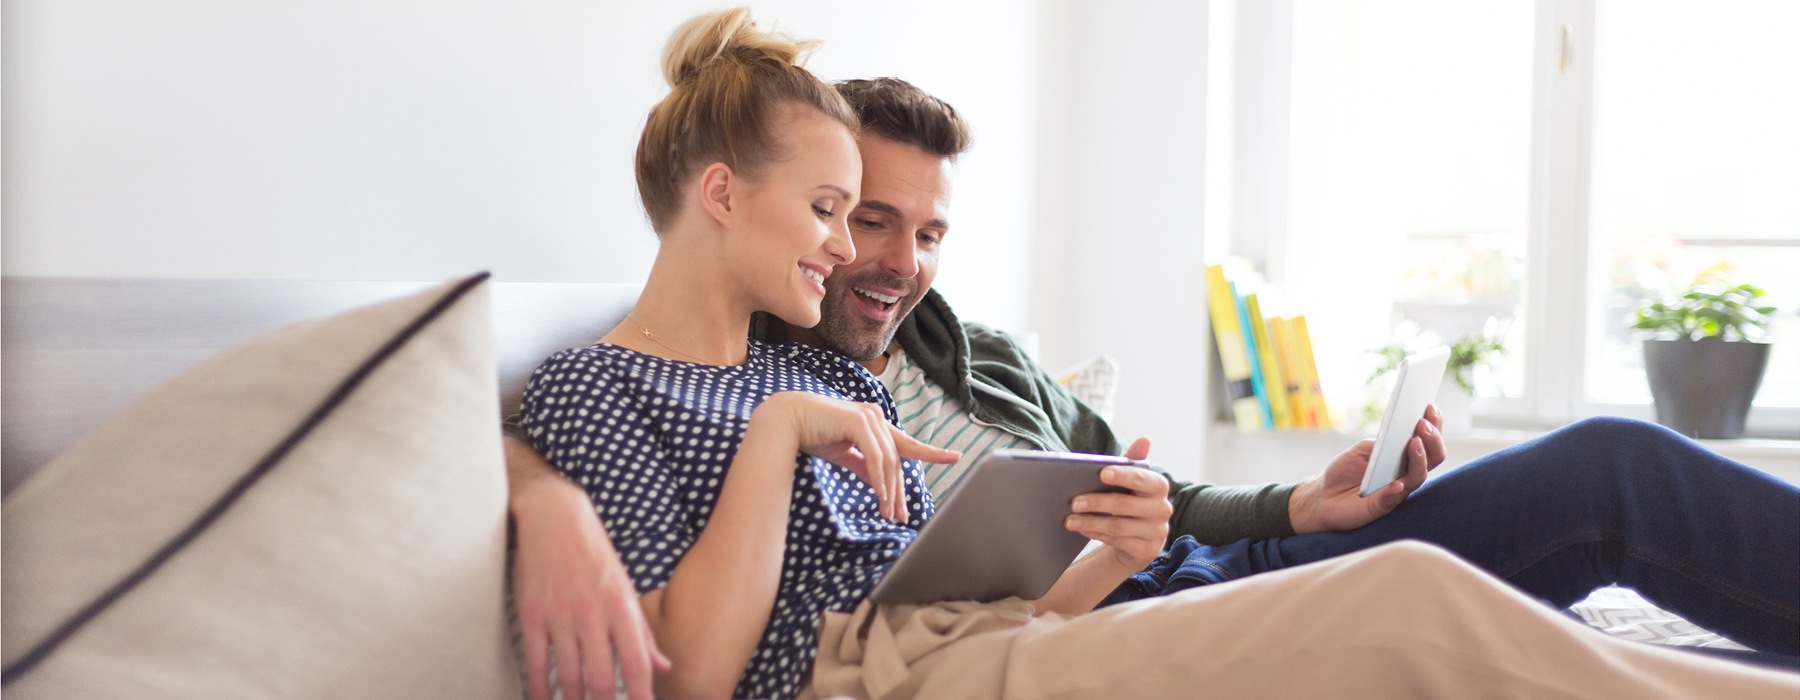 Man And Woman Sitting On Couch Using a Mobile Device